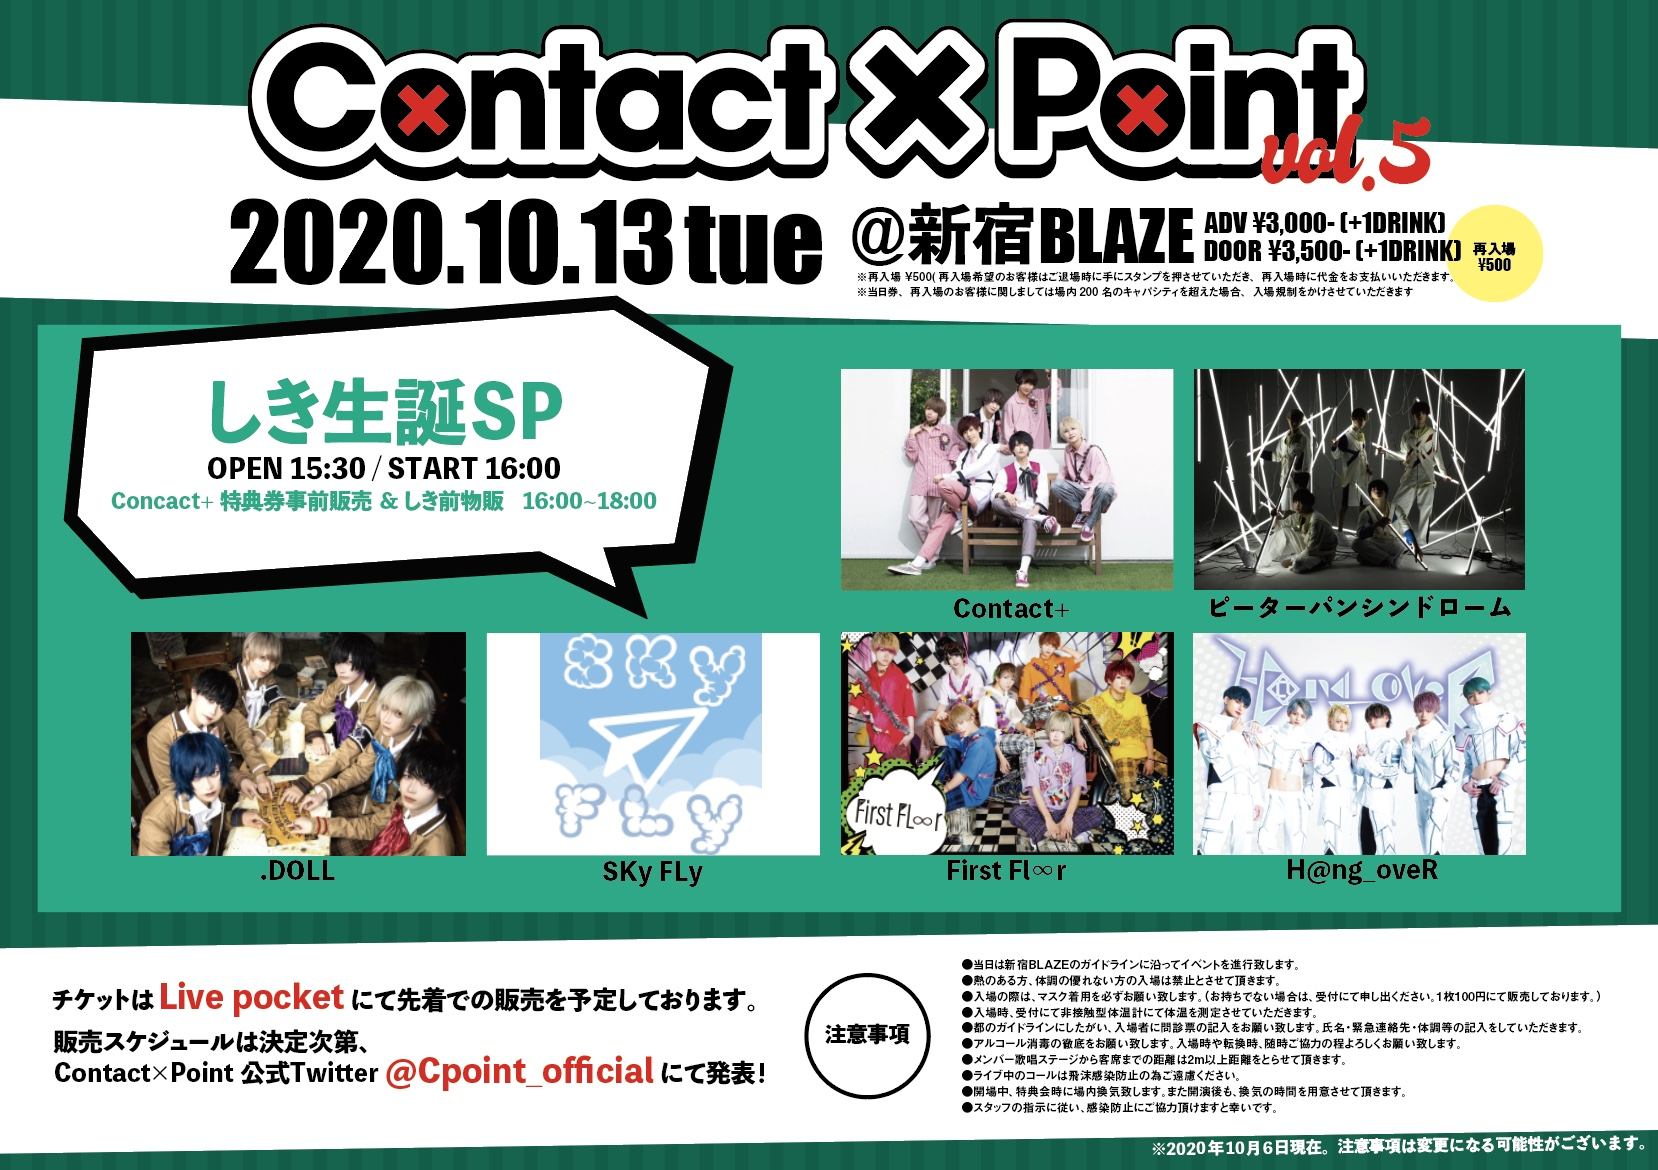 「Contact×Point Vol.5〜しき生誕SP〜」